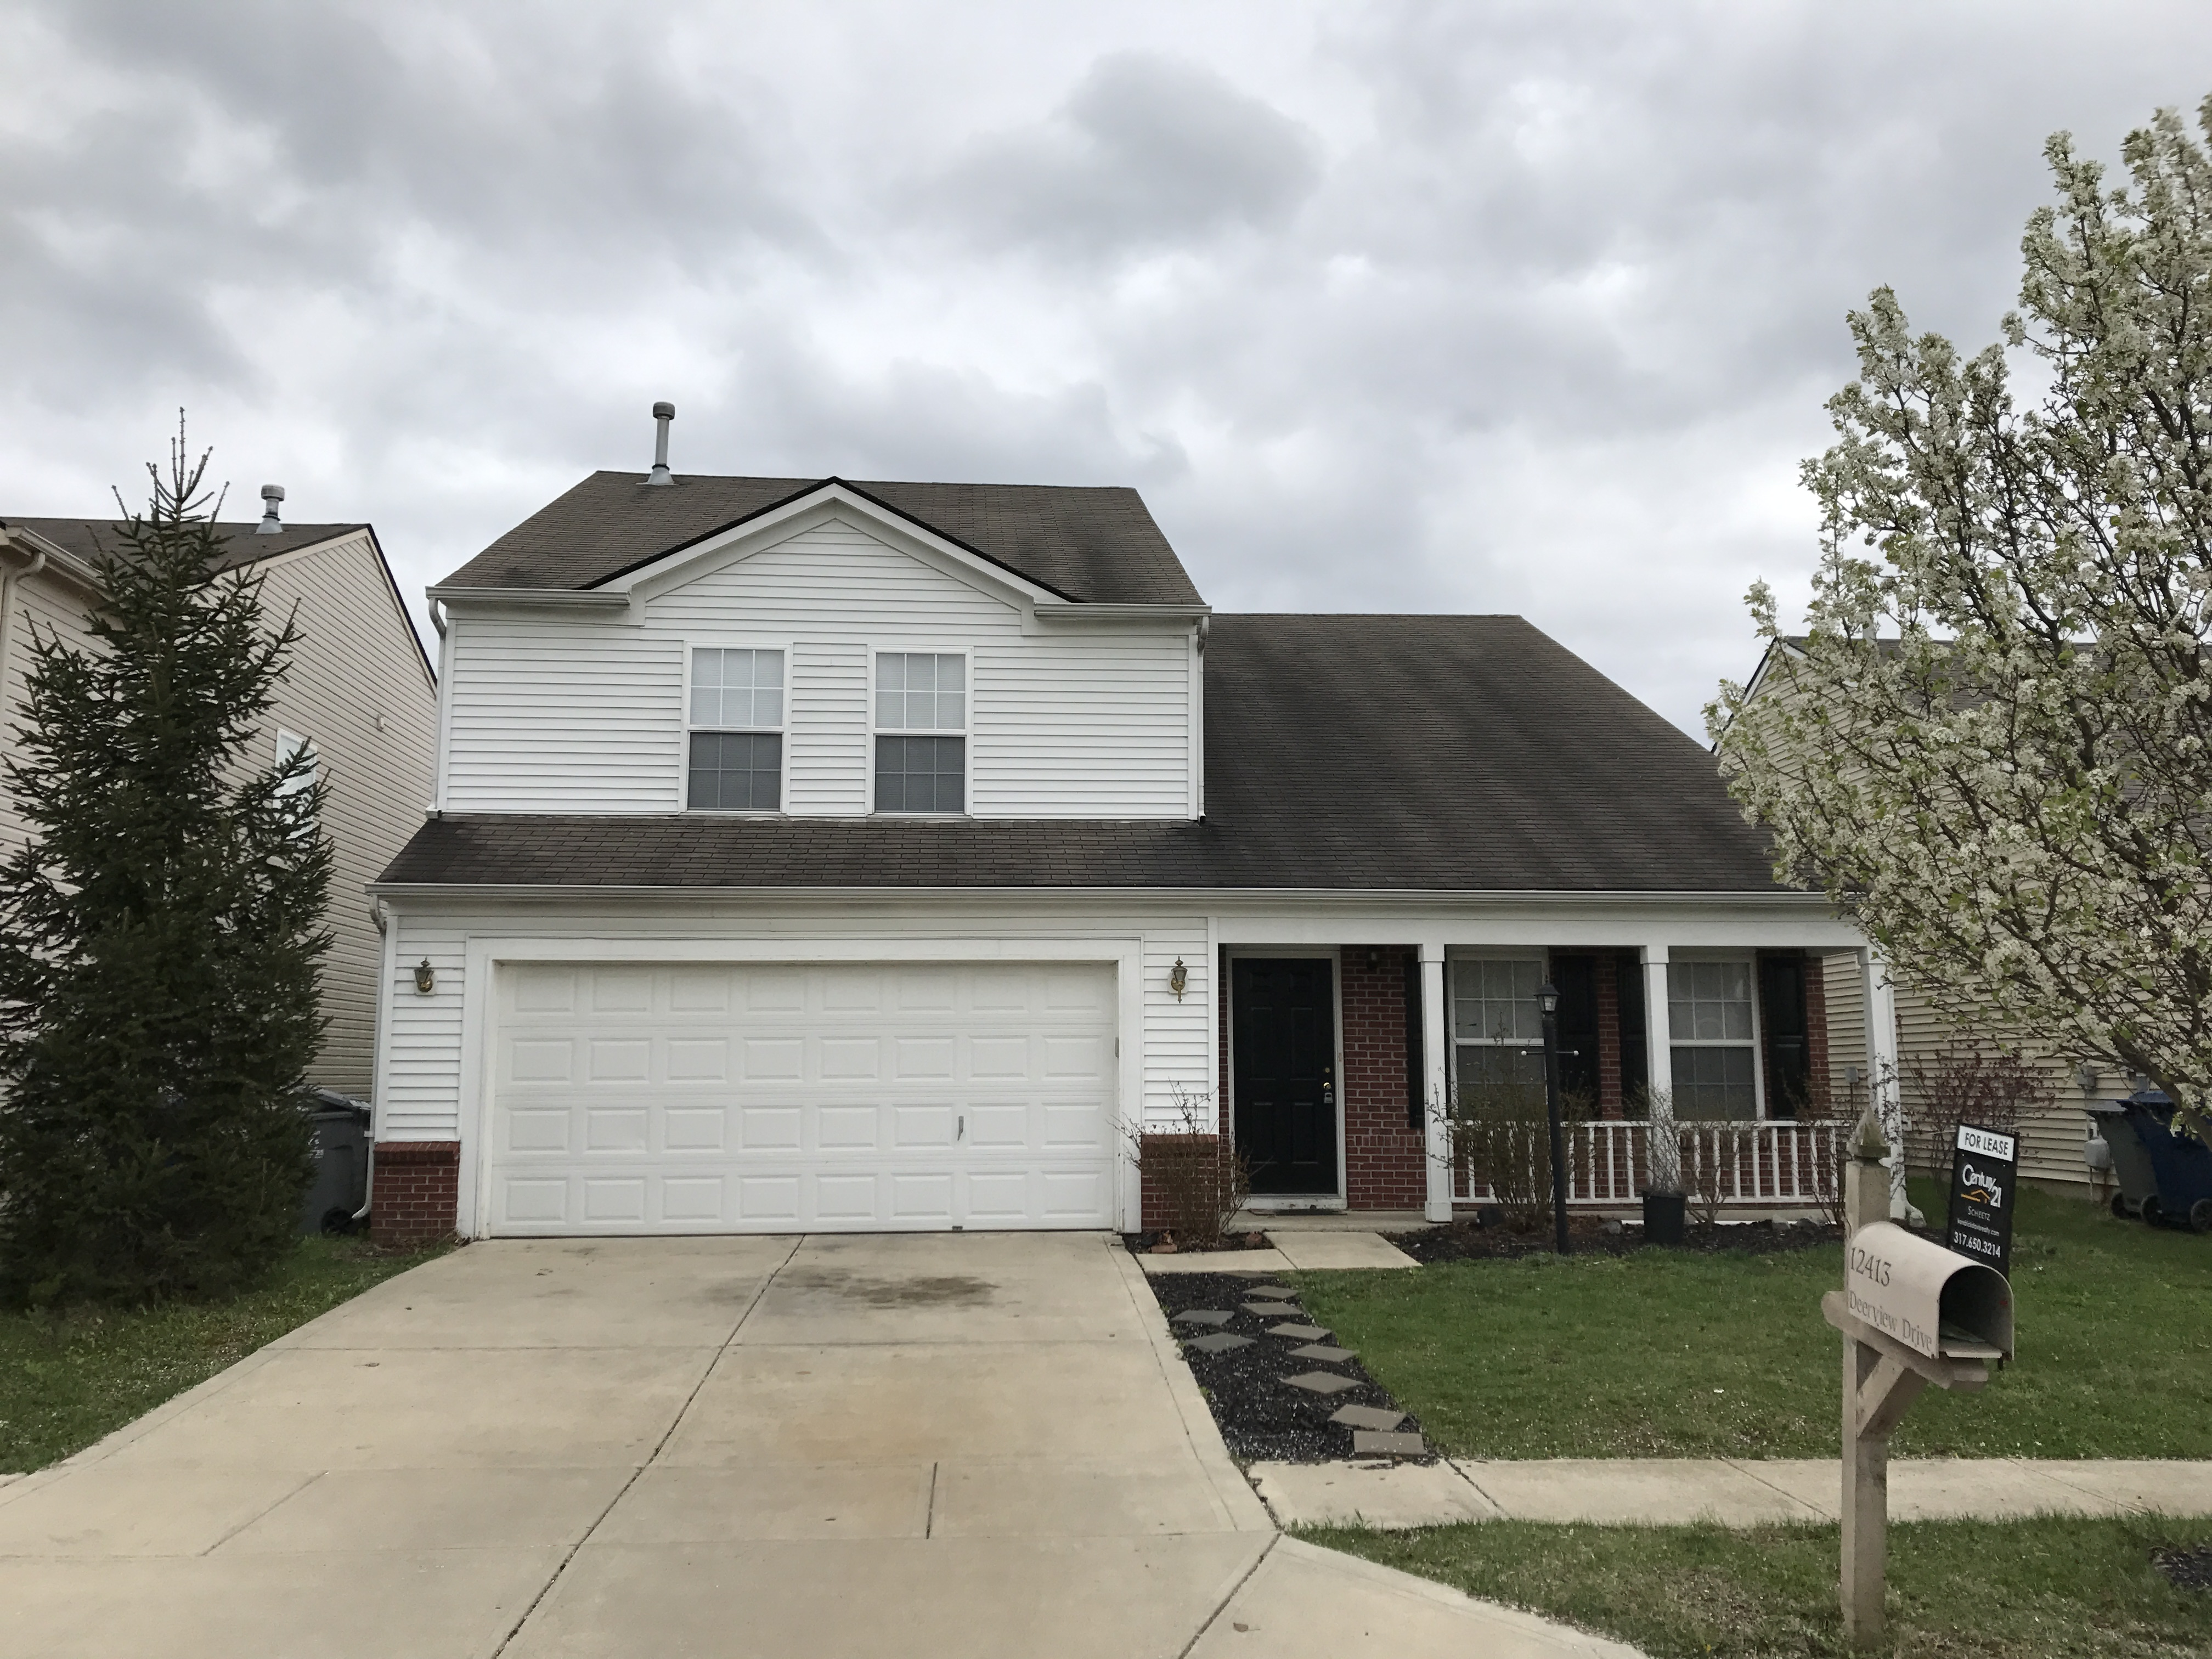 Photo of 12413 Deerview Drive, Noblesville, IN, 46060